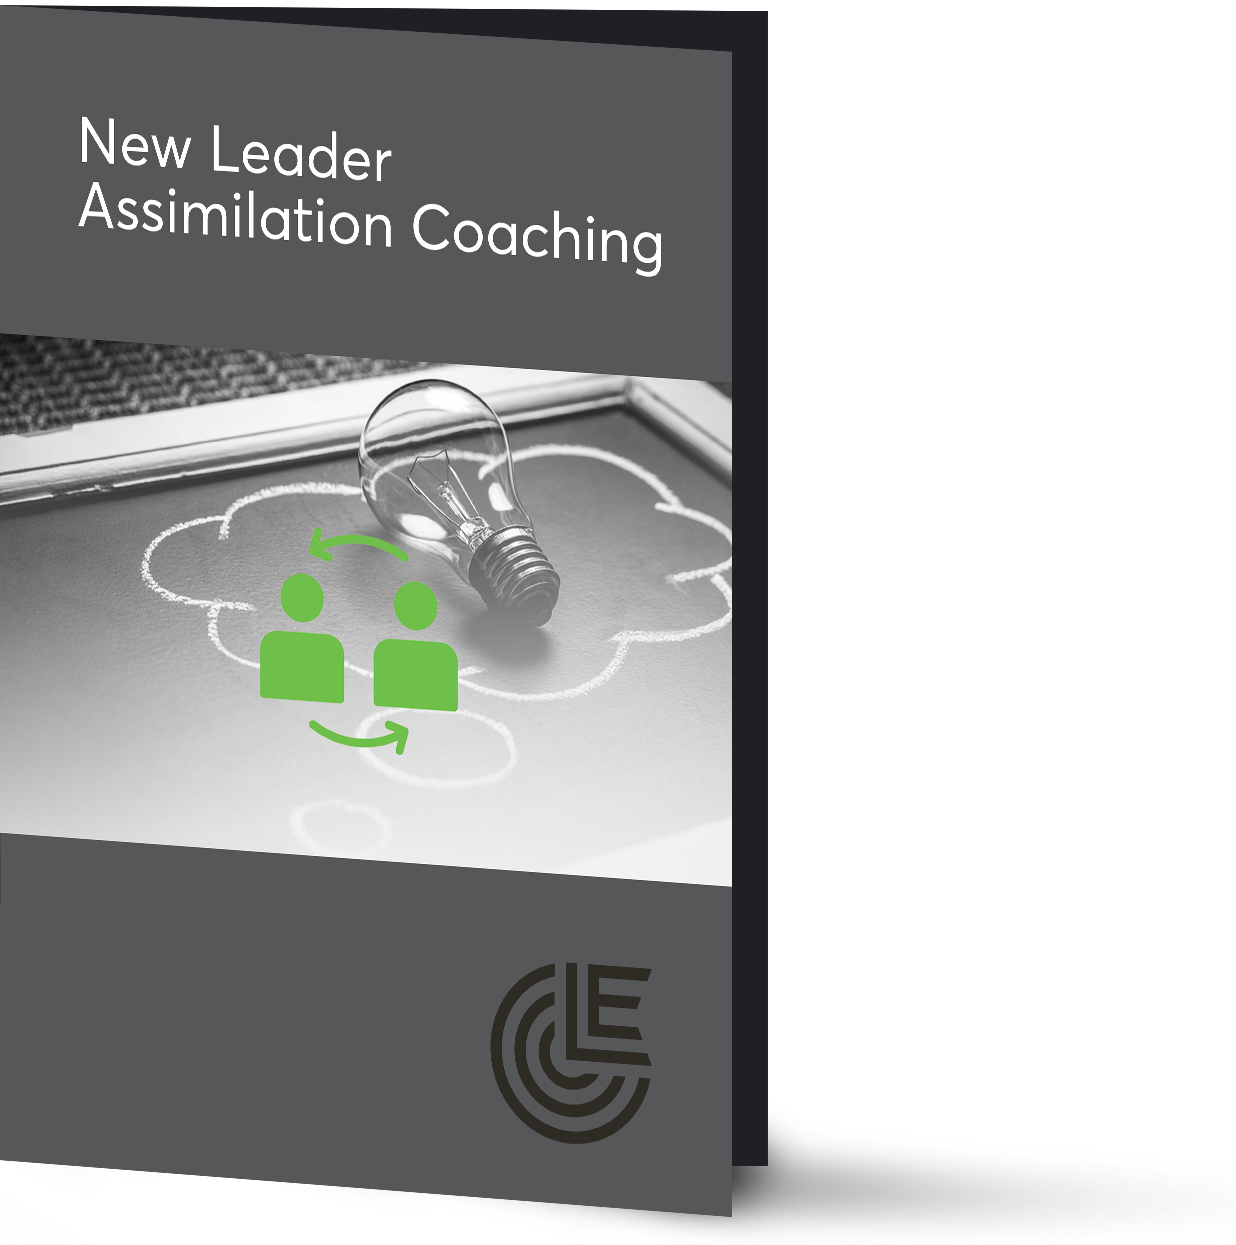 New-Leader-Assimilation-Coaching